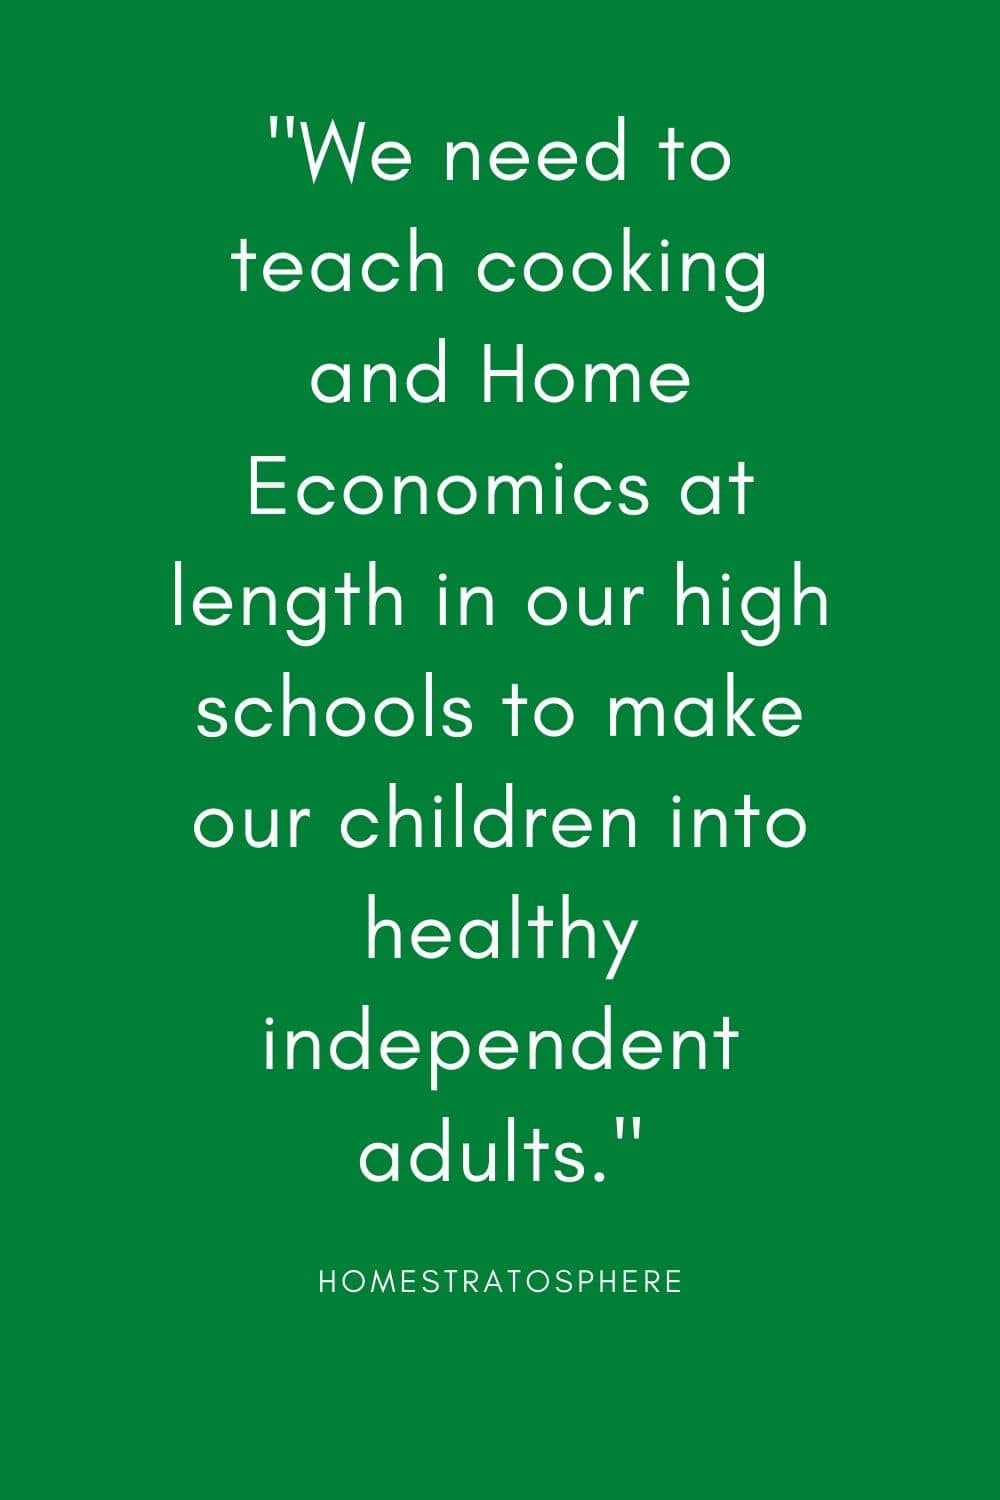 """We need to teach cooking and Home Economics at length in our high schools to make our children into healthy independent adults."""